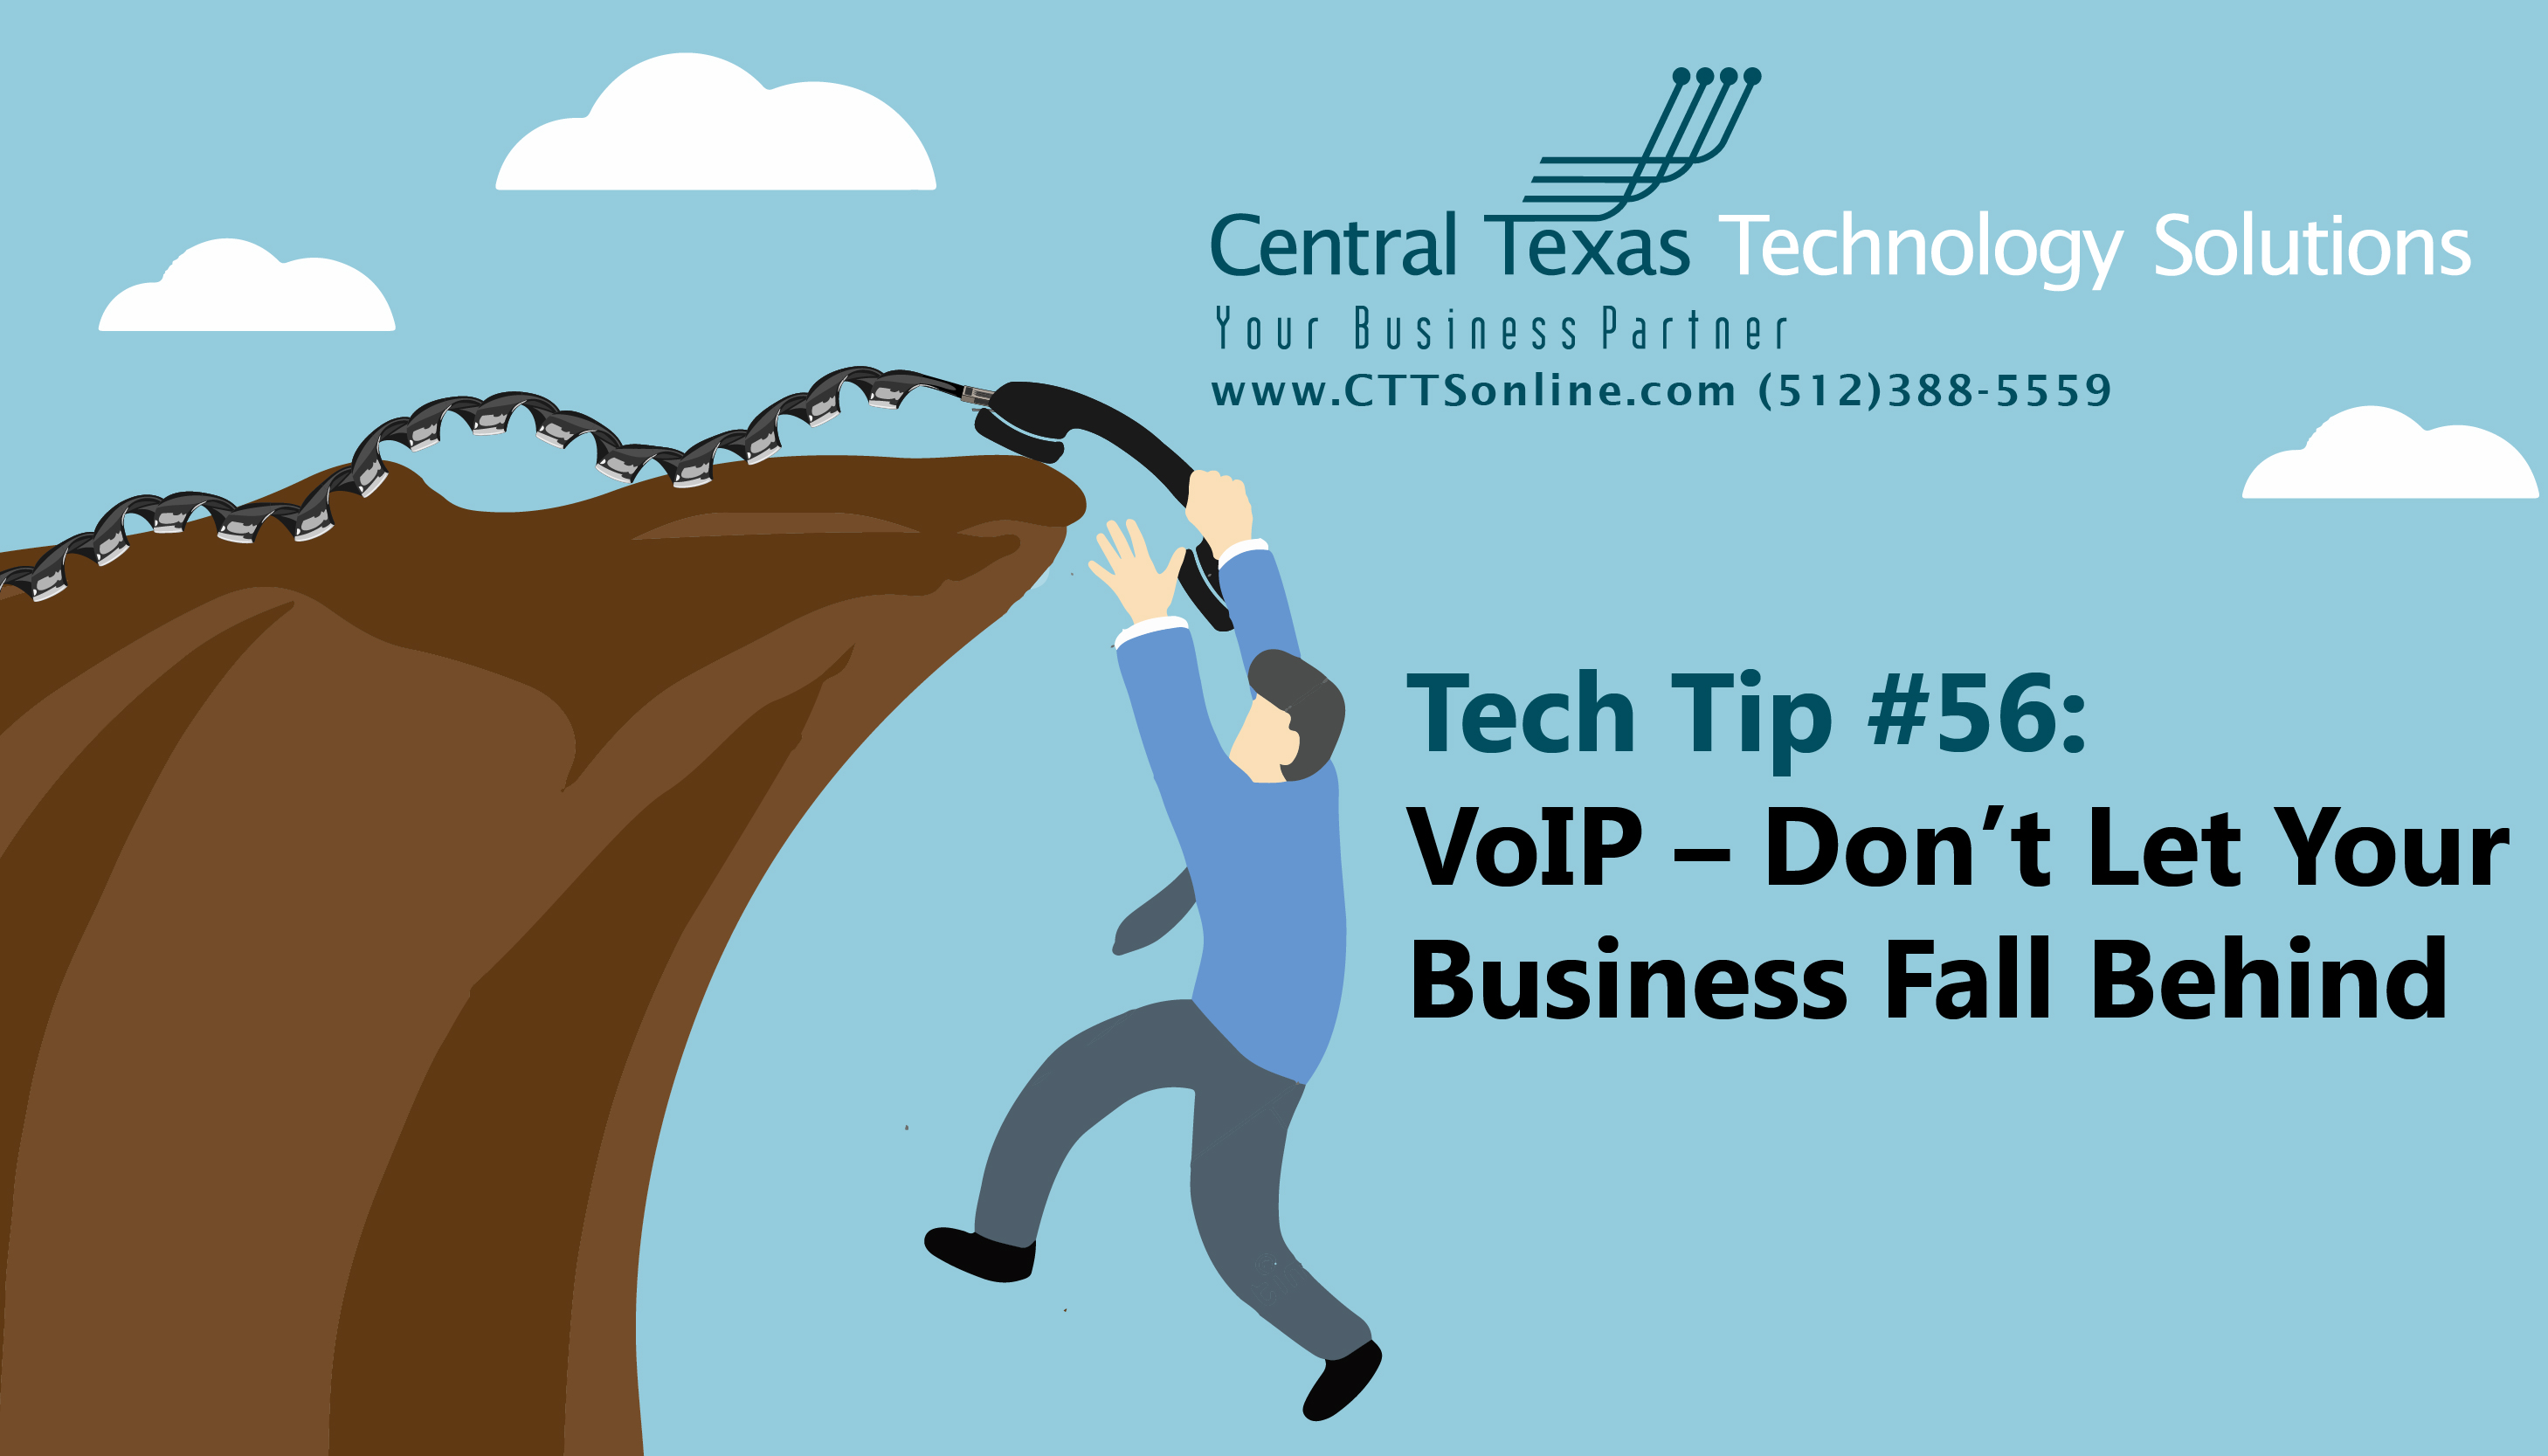 Tech Tip 56 Voip Dont Let Your Business Fall Behind